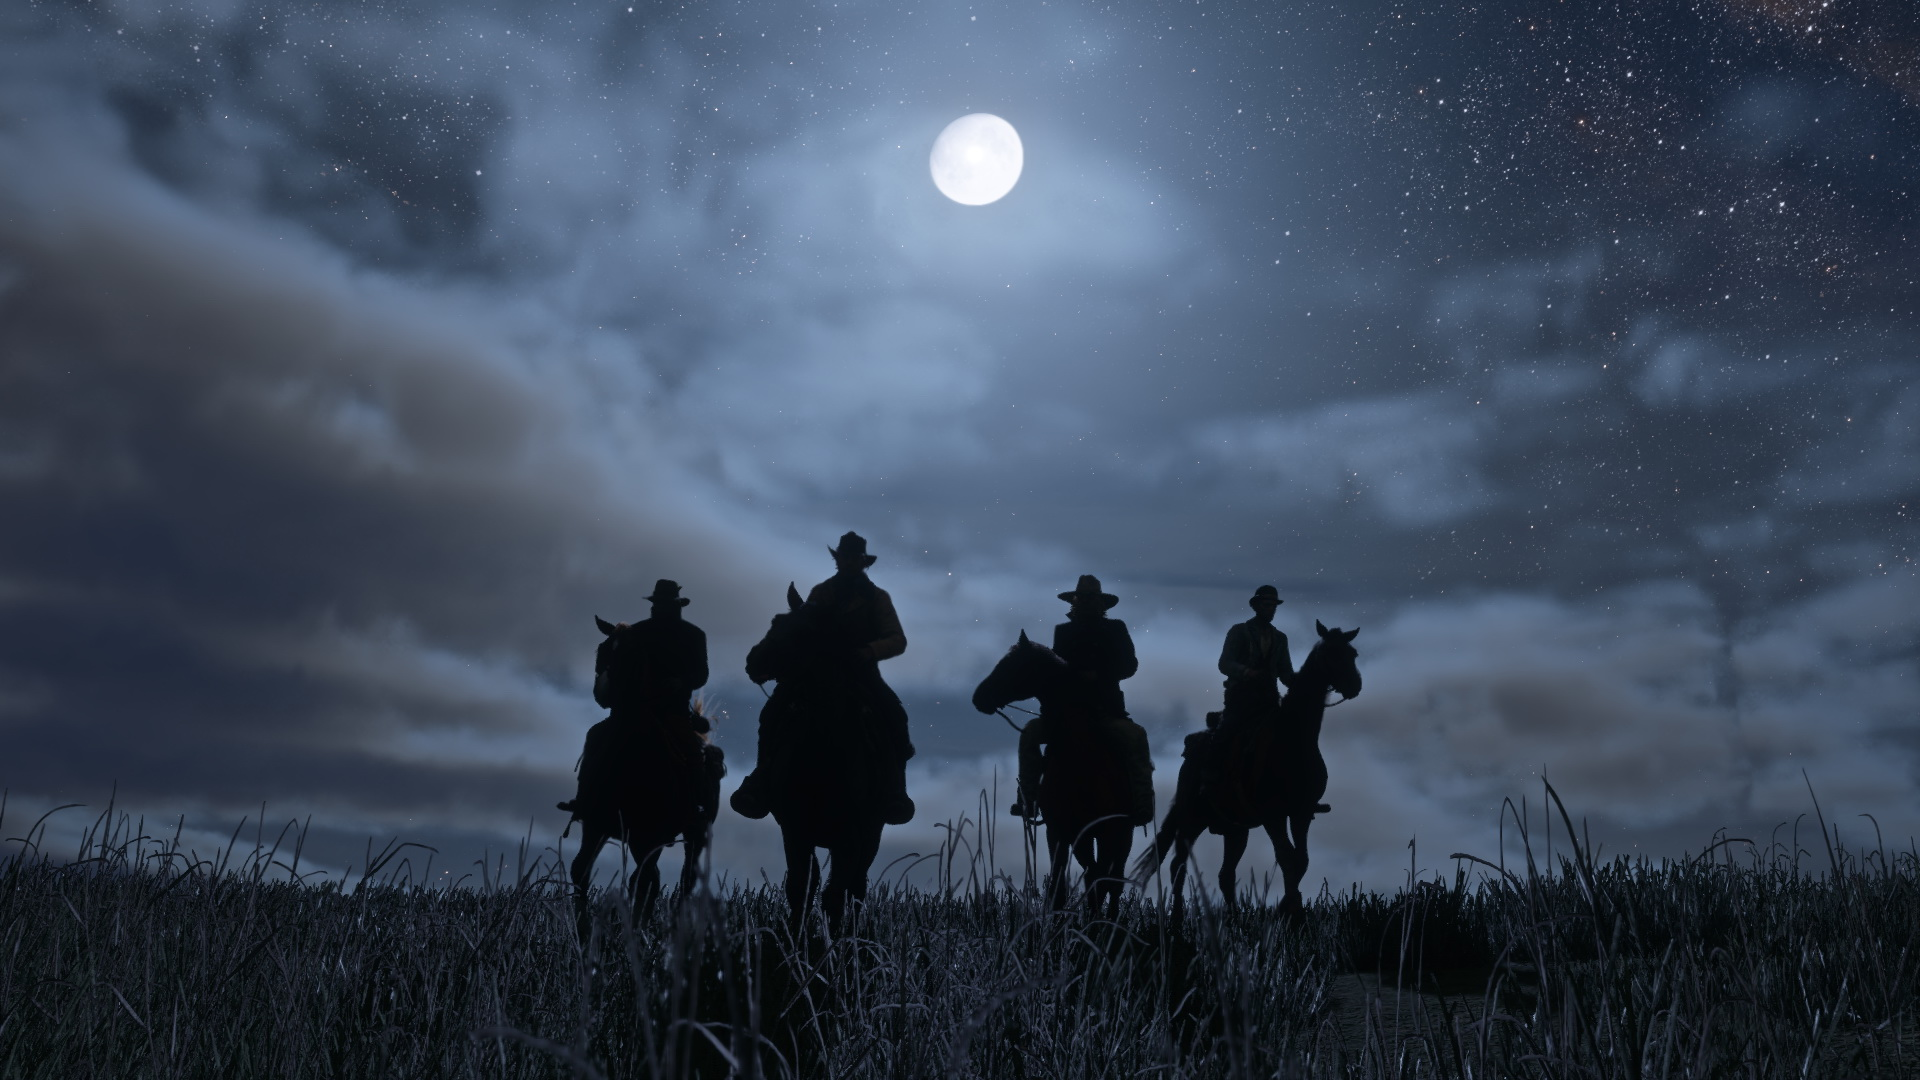 15 Things You Need To Know Before You Buy Red Dead Redemption 2